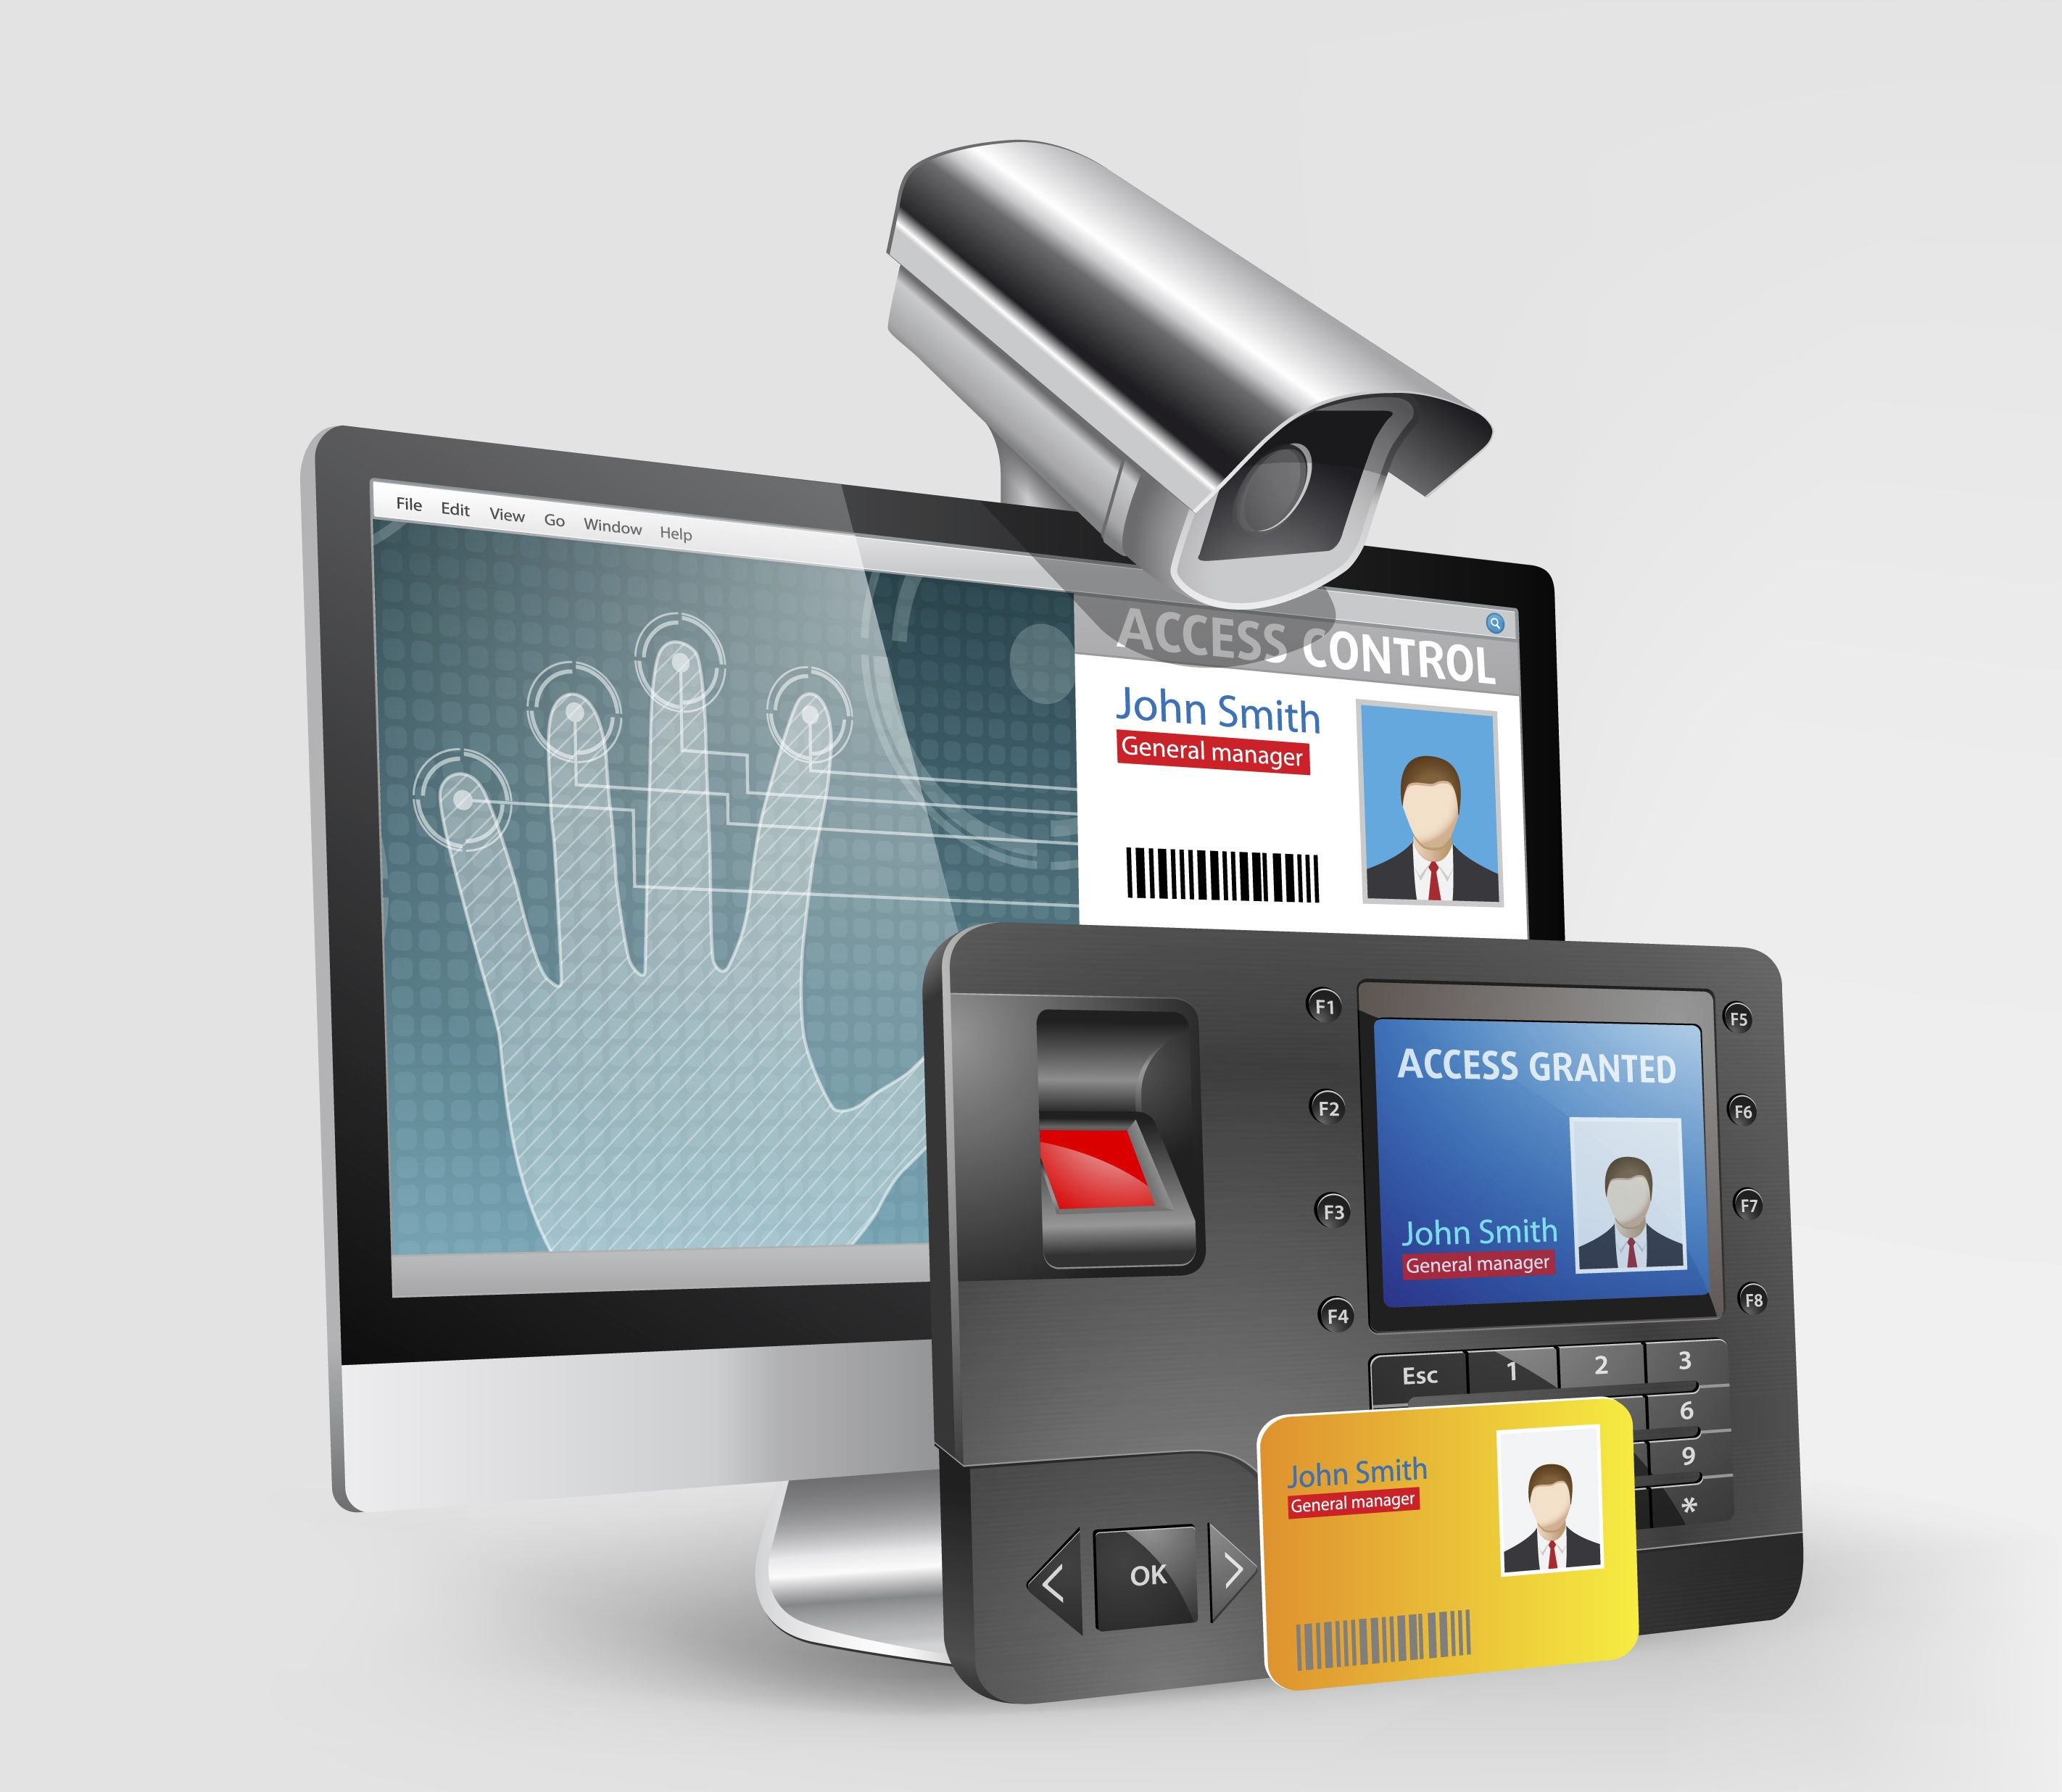 Biometric Attendance System Is Used To Take Employee